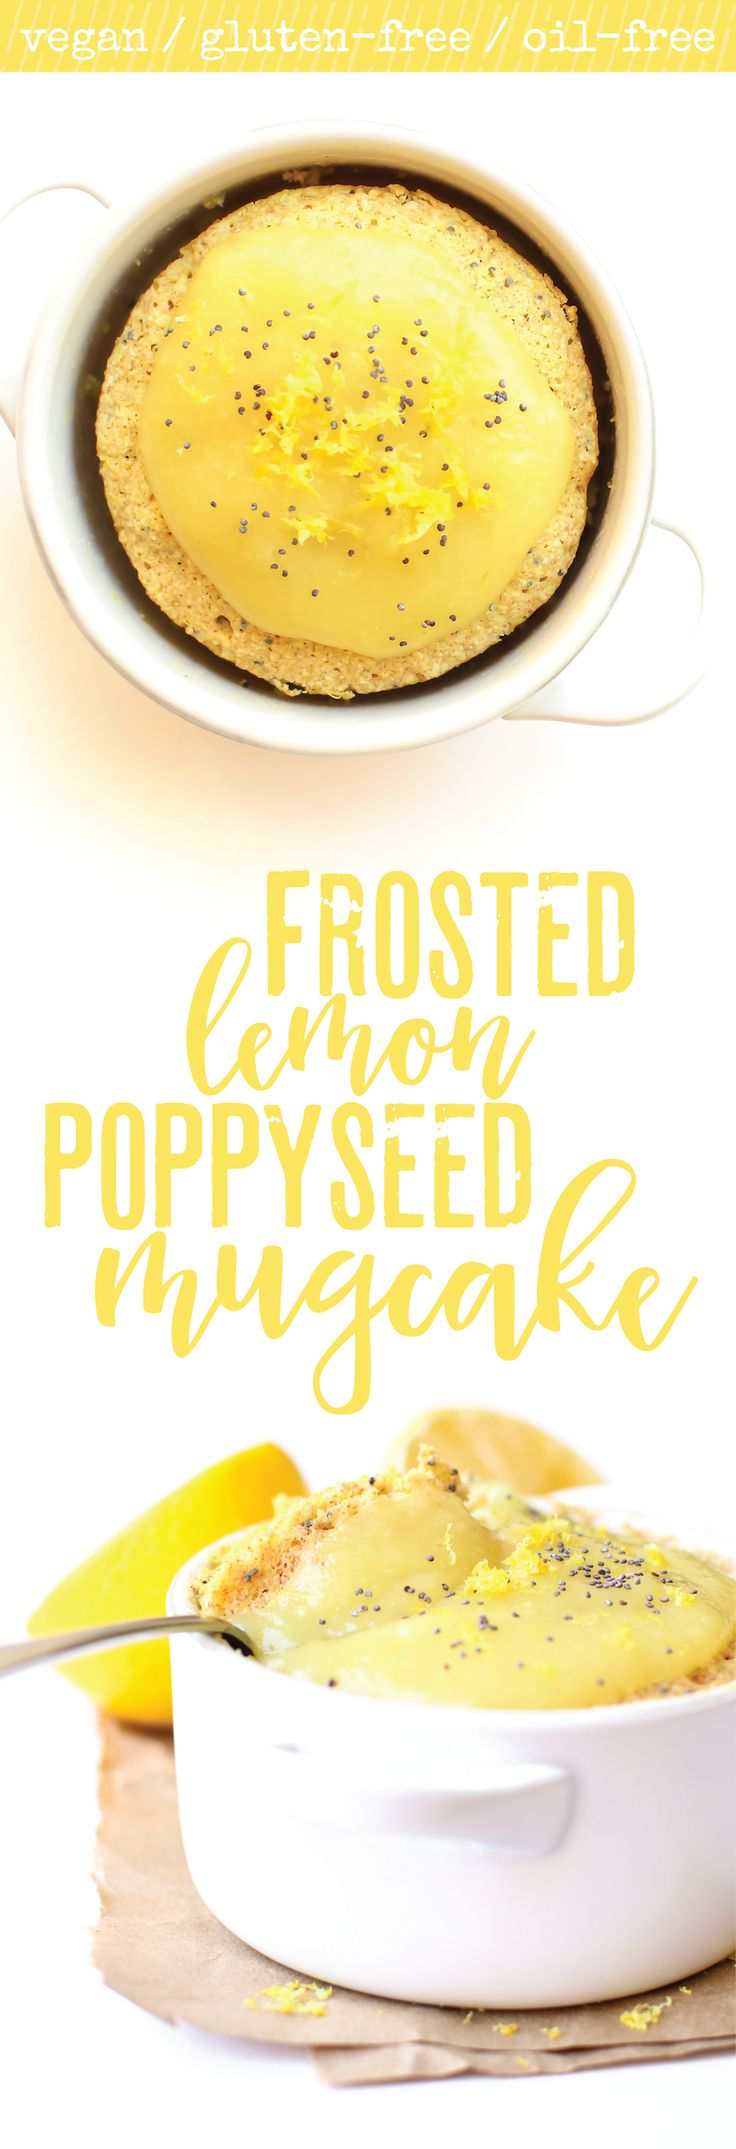 Lemon poppy seed cake for one made in just minutes and topped with a sweet fruity frosting! Vegan. Gluten-free. Oil-free.